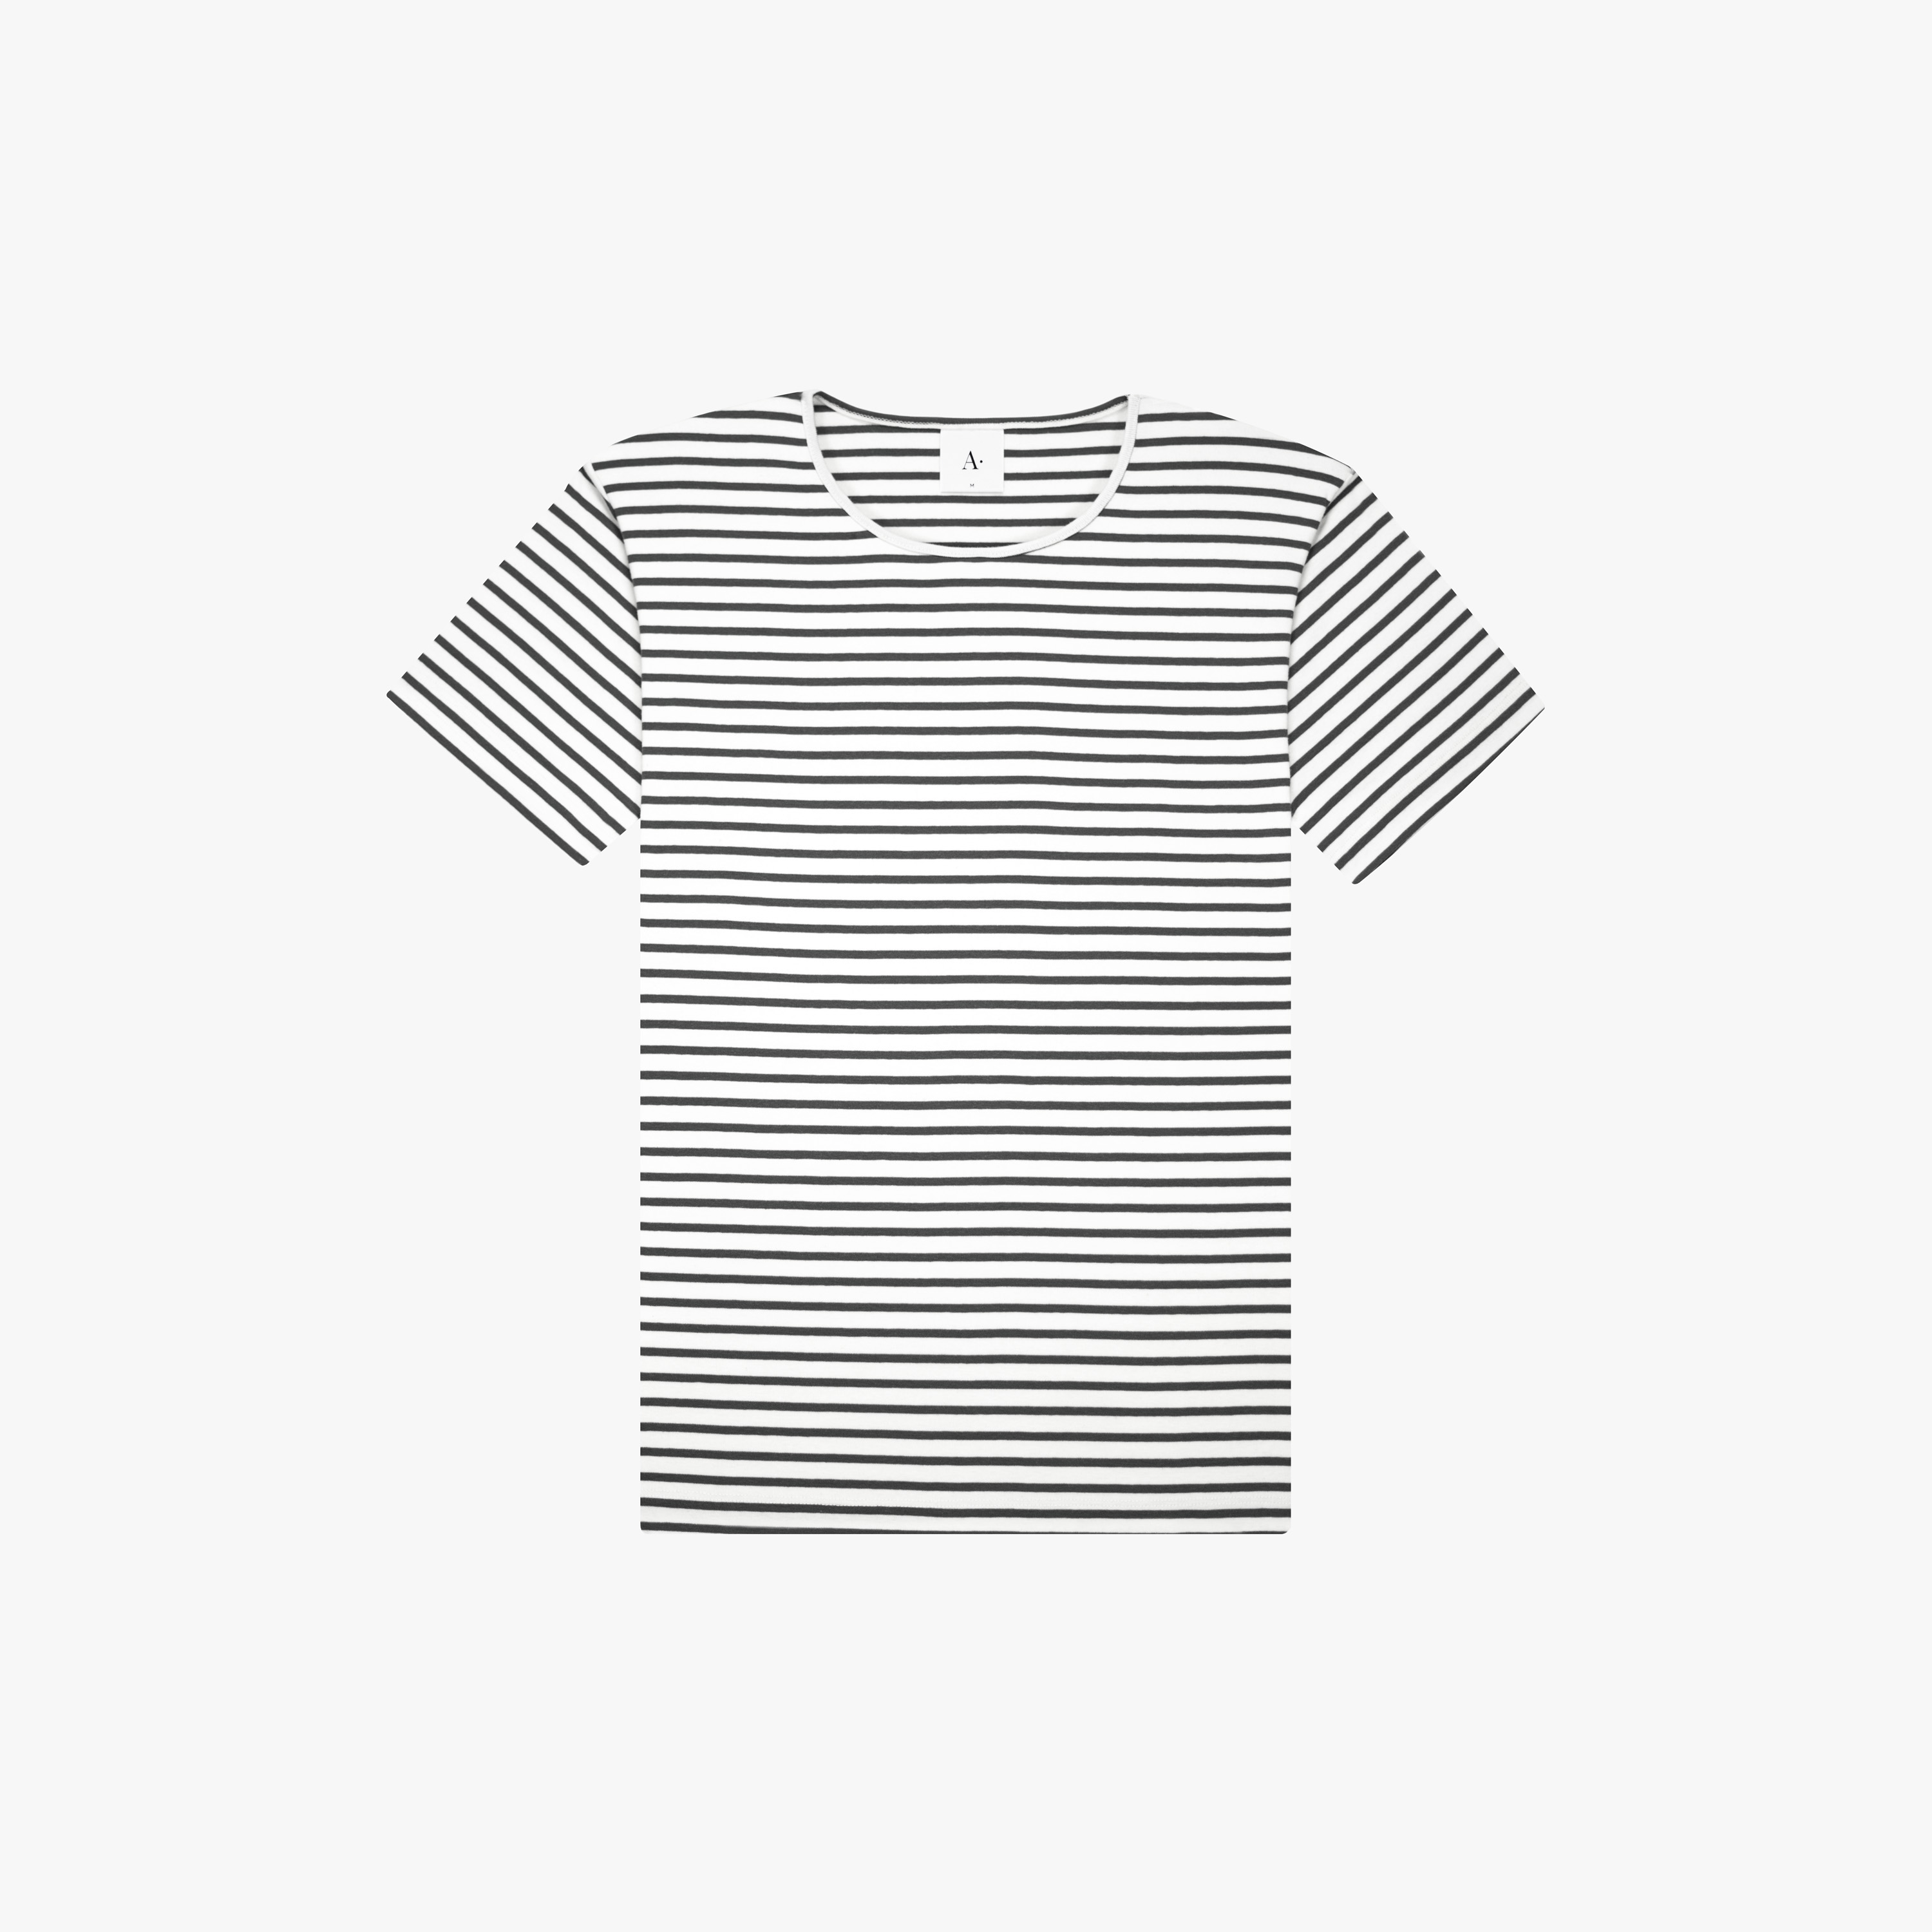 Stripe, custom, developed, premium, organic, natural, cotton, quality